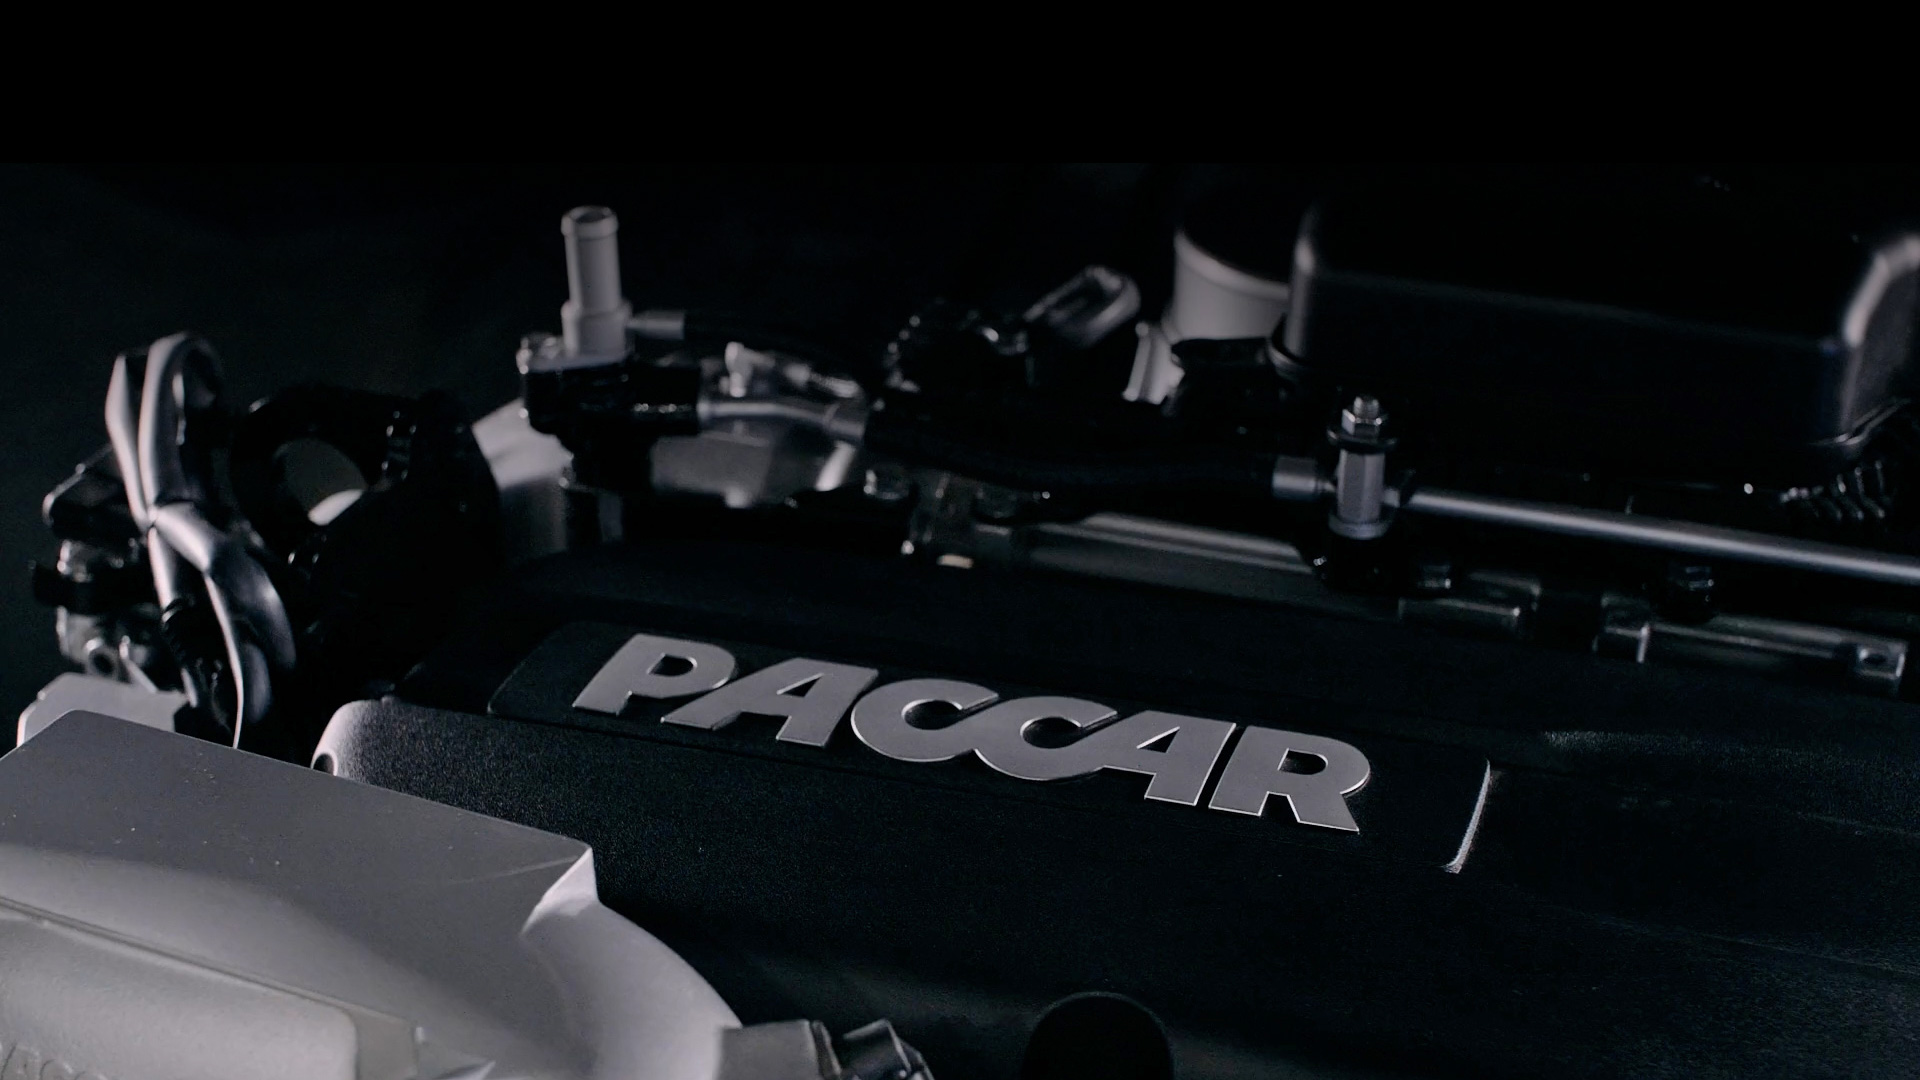 Closeup of Paccar part engine